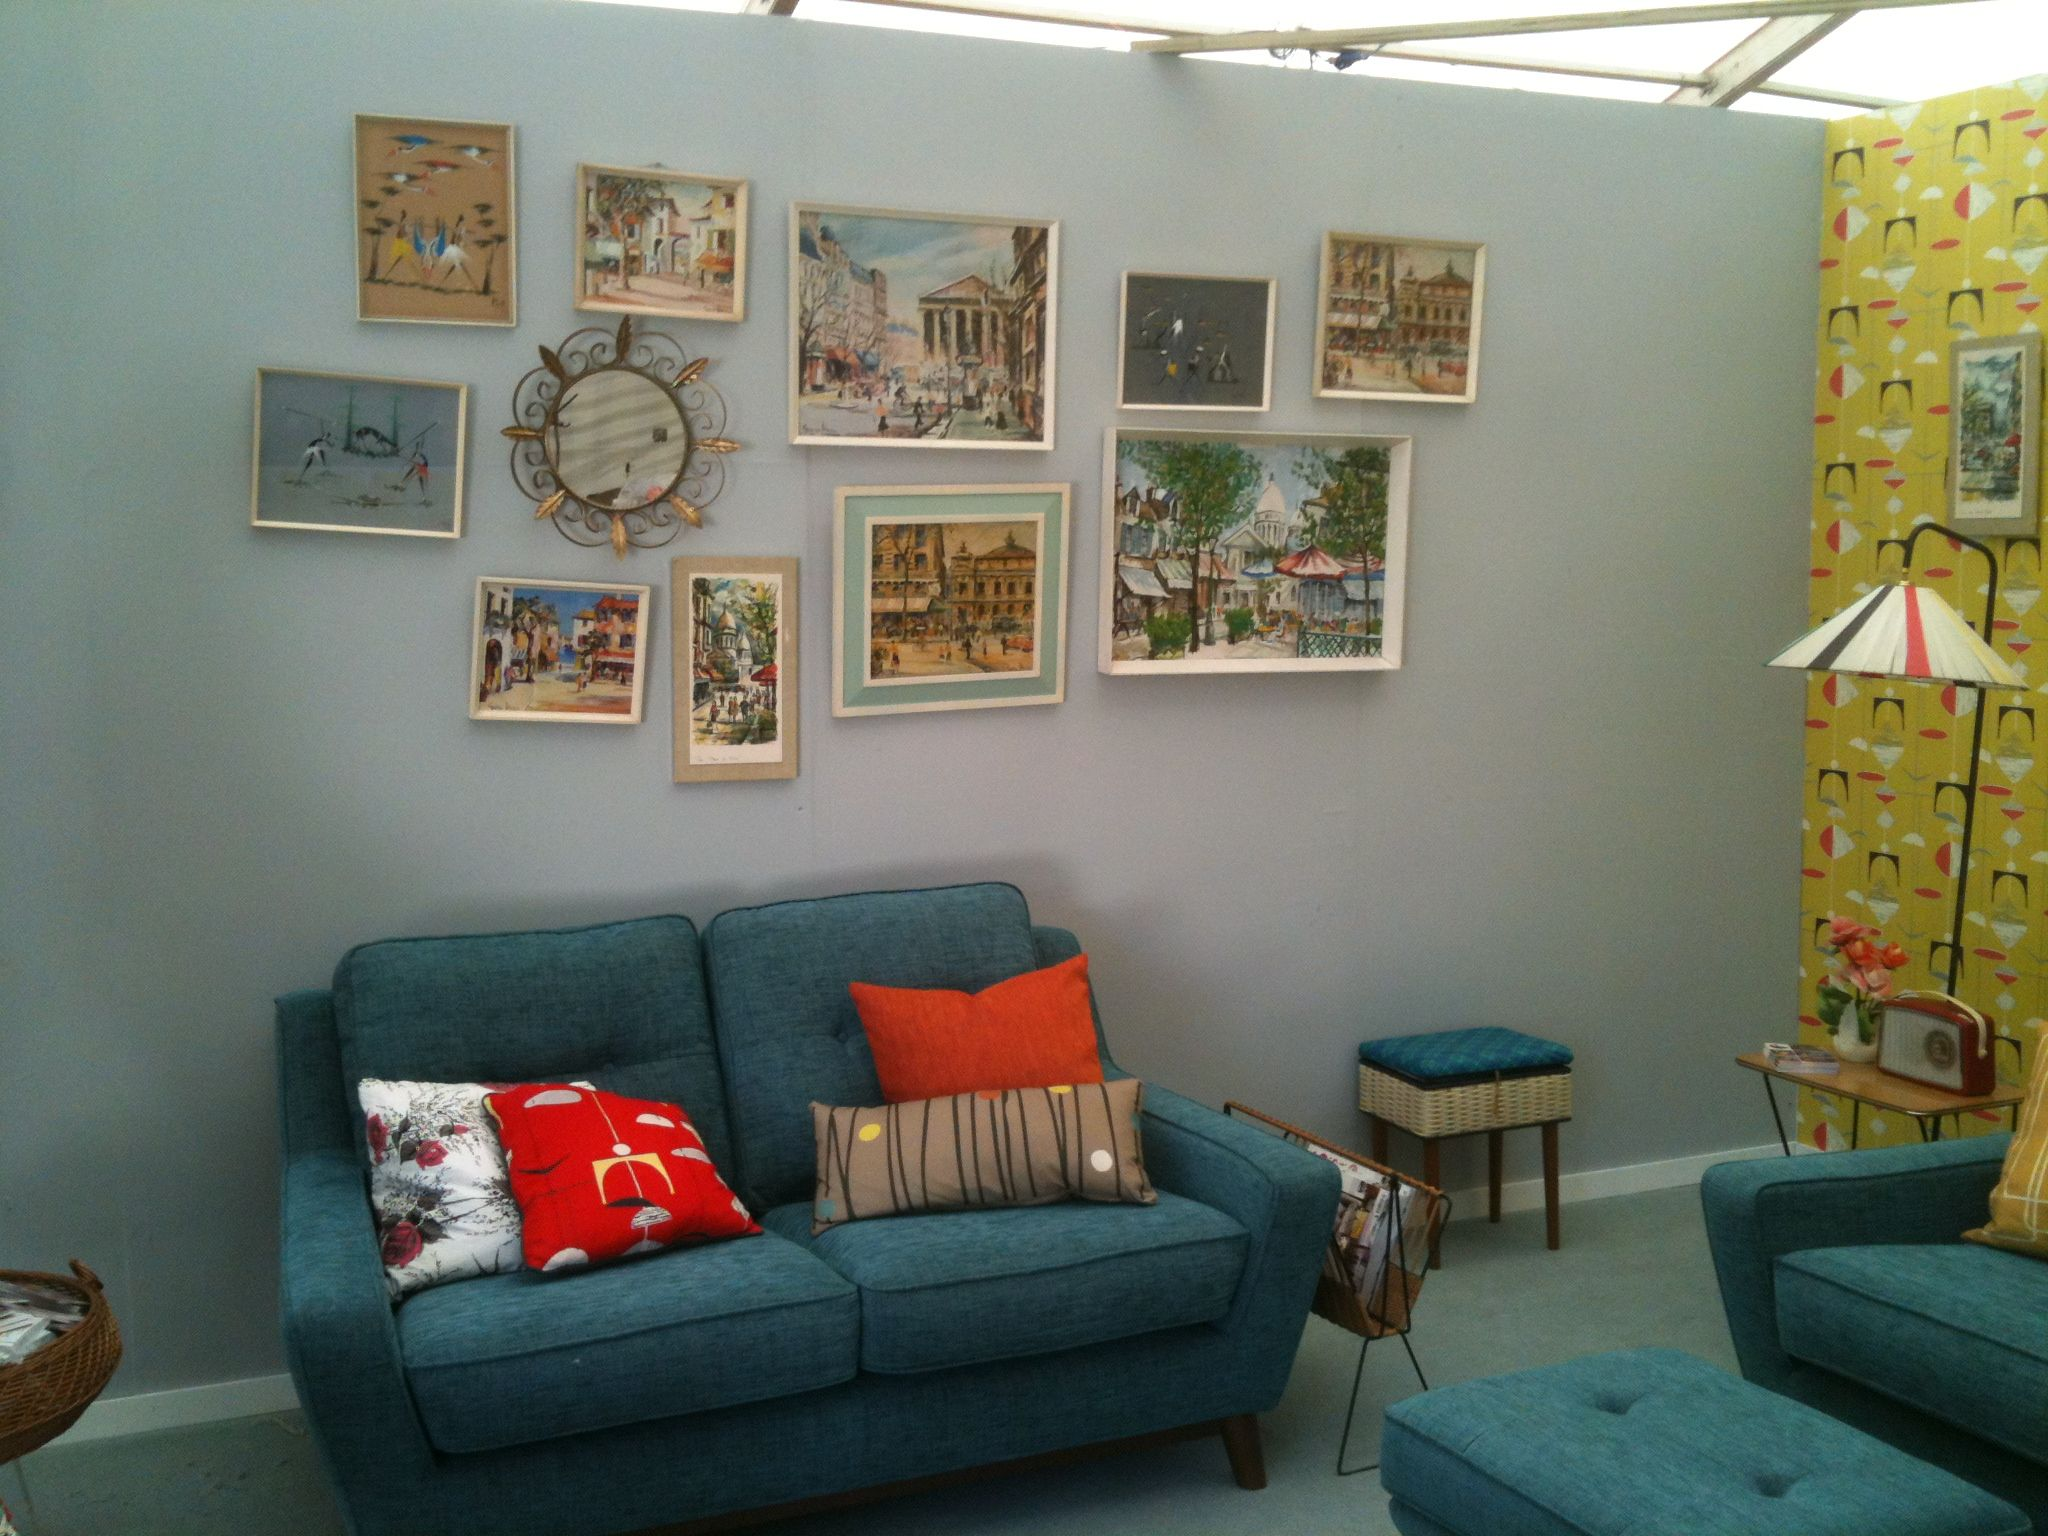 Our Lovely Colleagues At Homes U0026 Antiques Have A Living Room Set At This  Weekendu0027s Vintage Festival At Wilderness, Featuring Our Fab New G Plan  Vintage ...